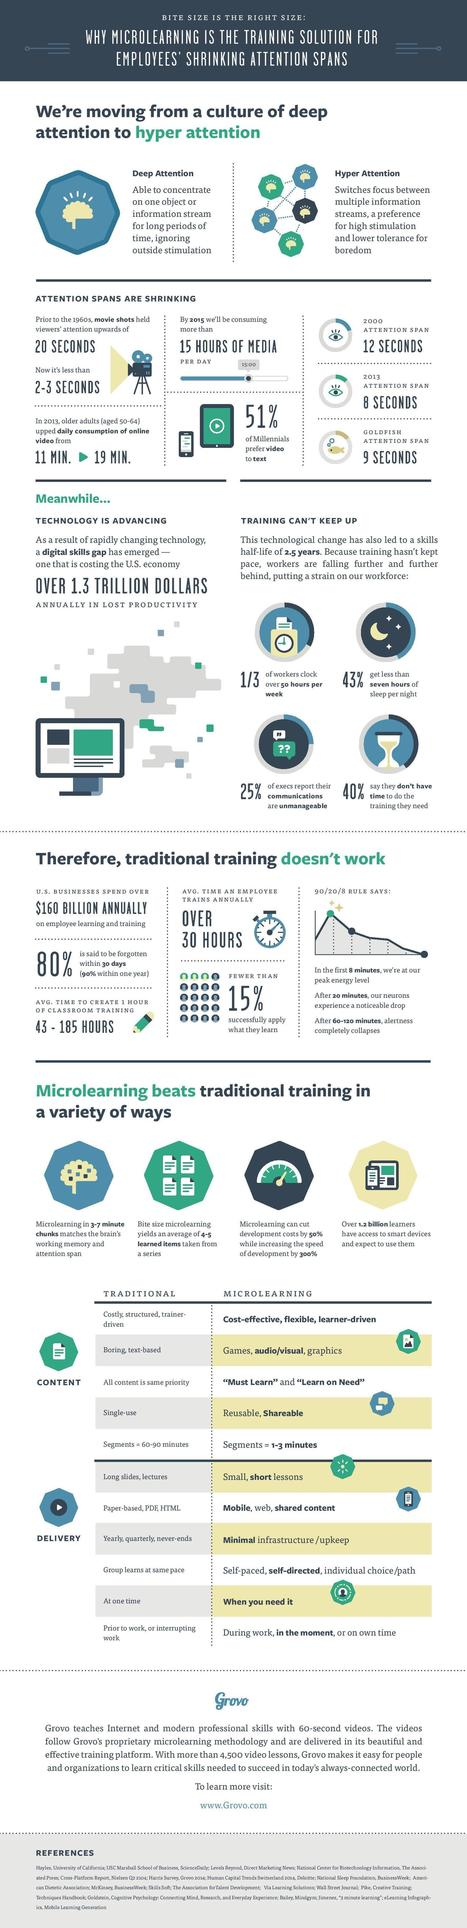 Traditional Training vs the Bite Size Approach Infographic - e-Learning Infographics | Free Education | Scoop.it